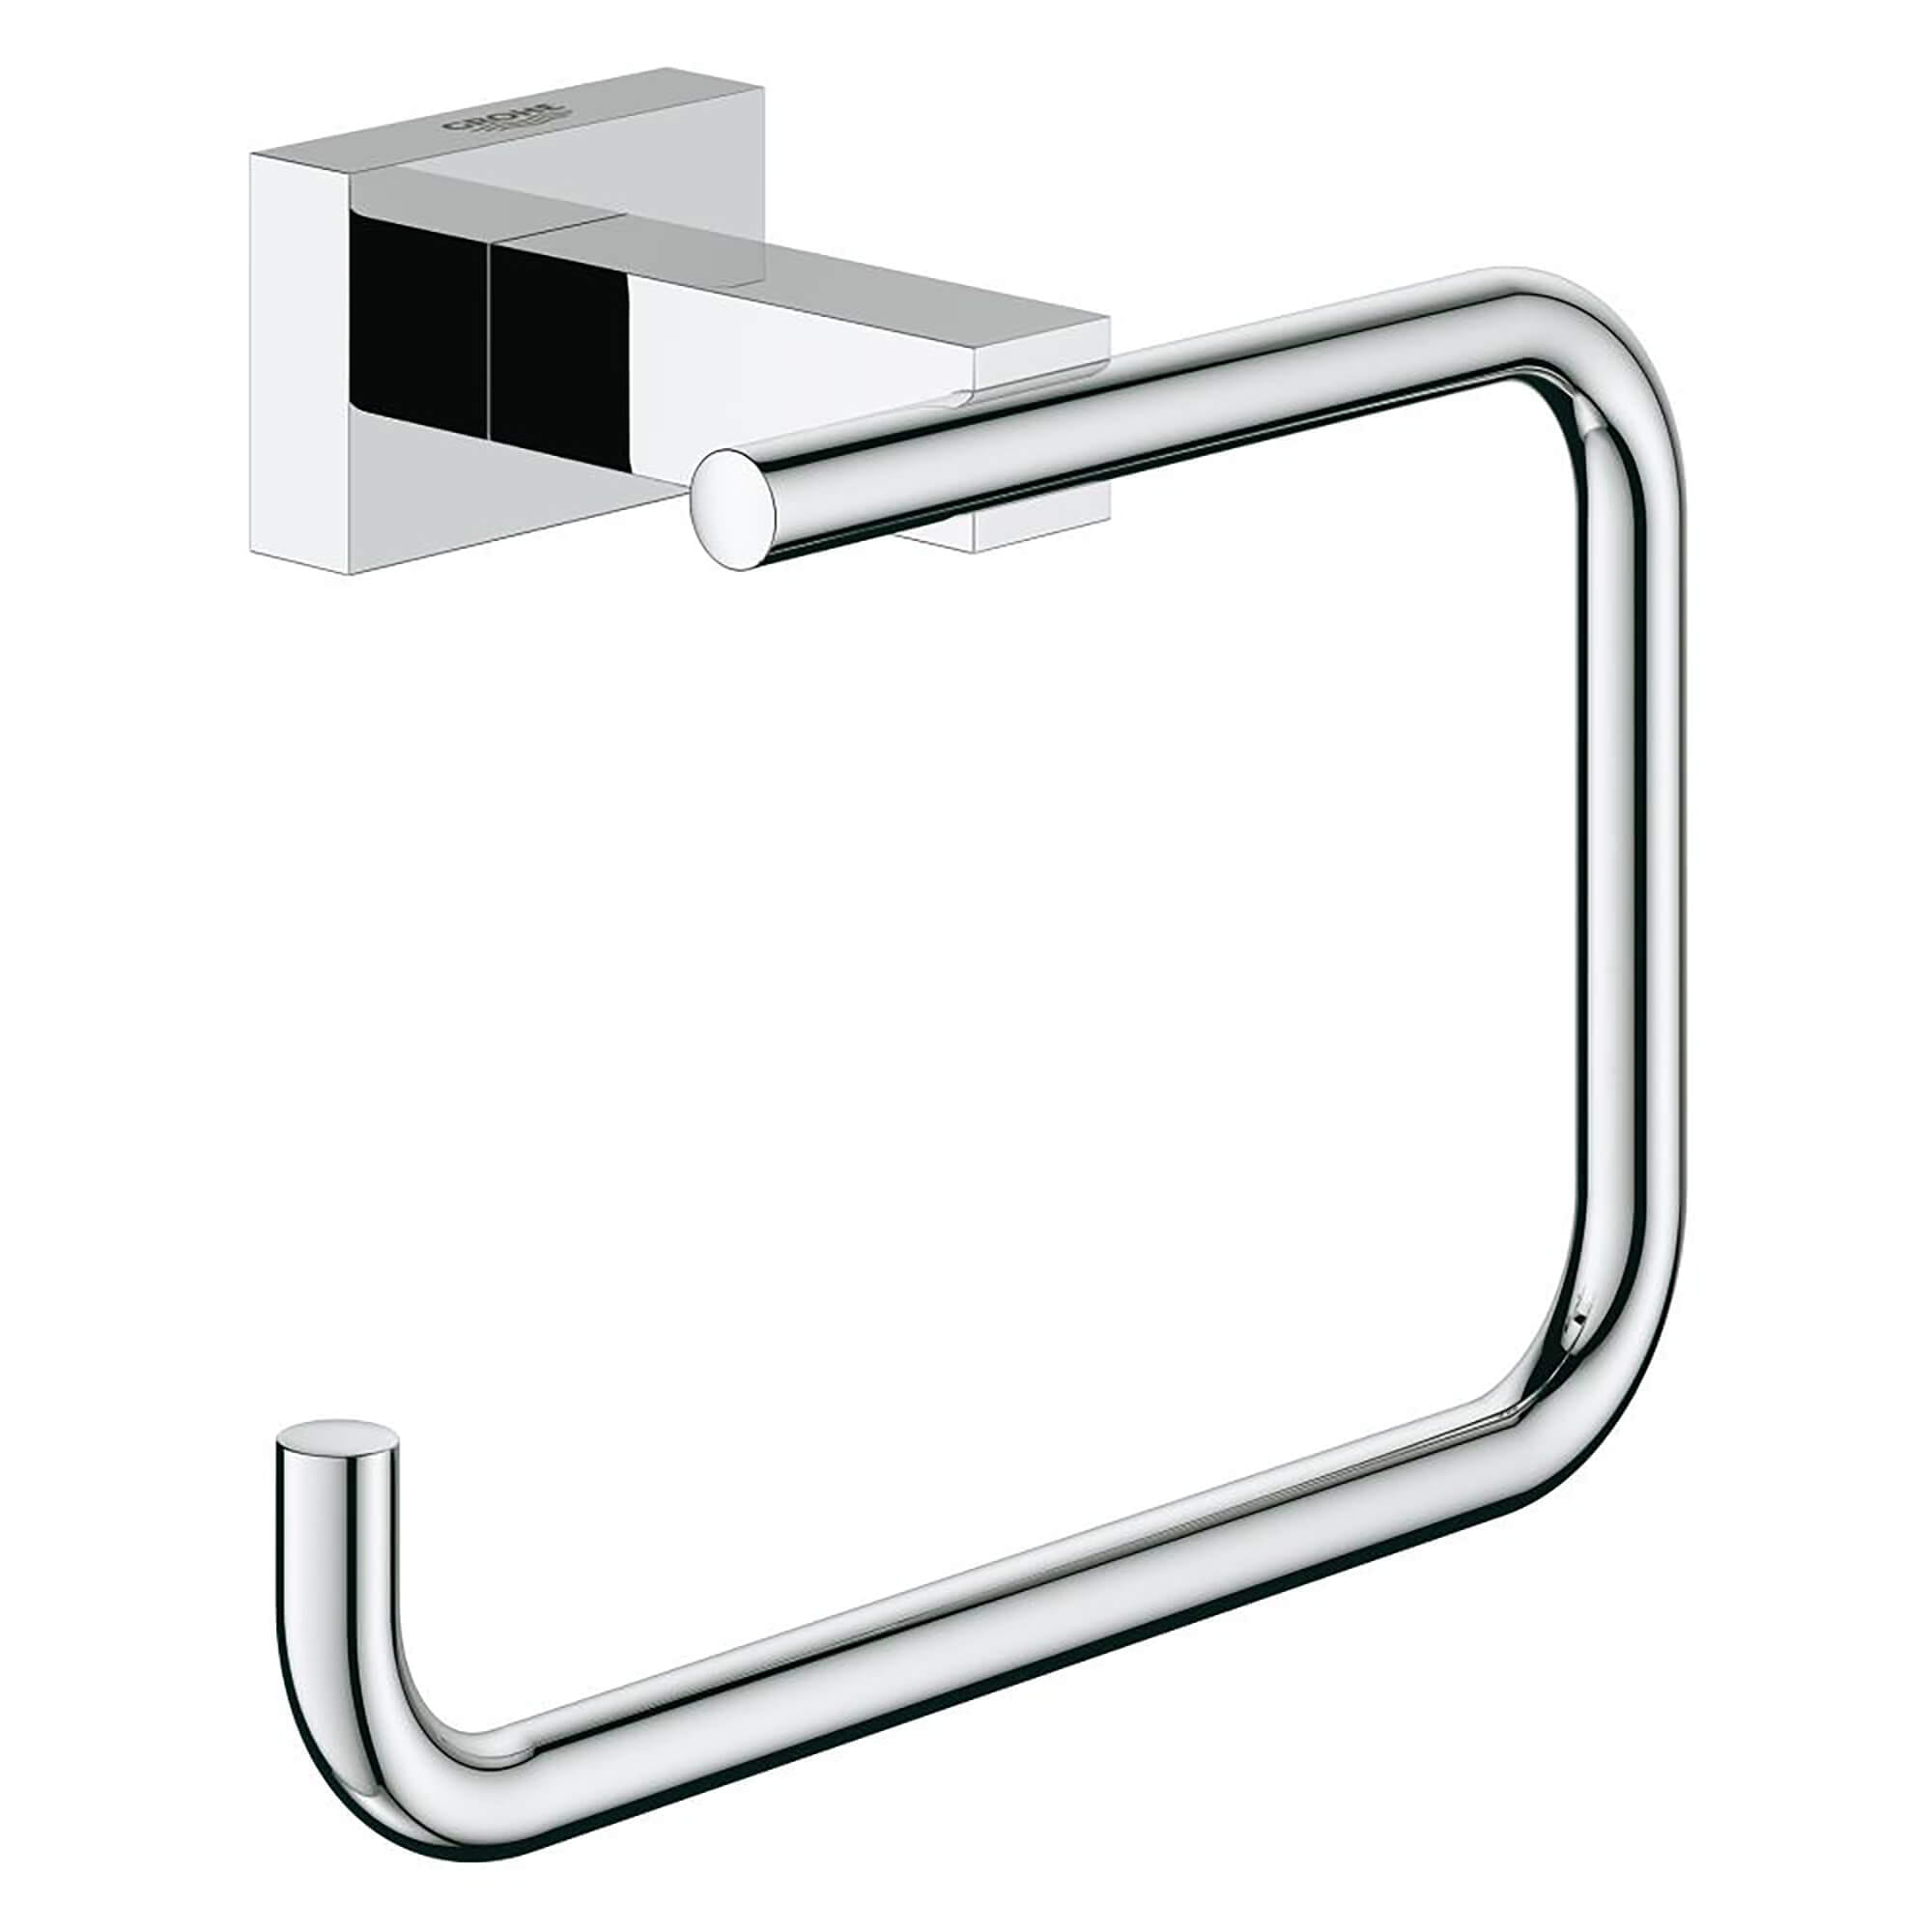 Essentials Cube Toilet Paper Holder GROHE CHROME